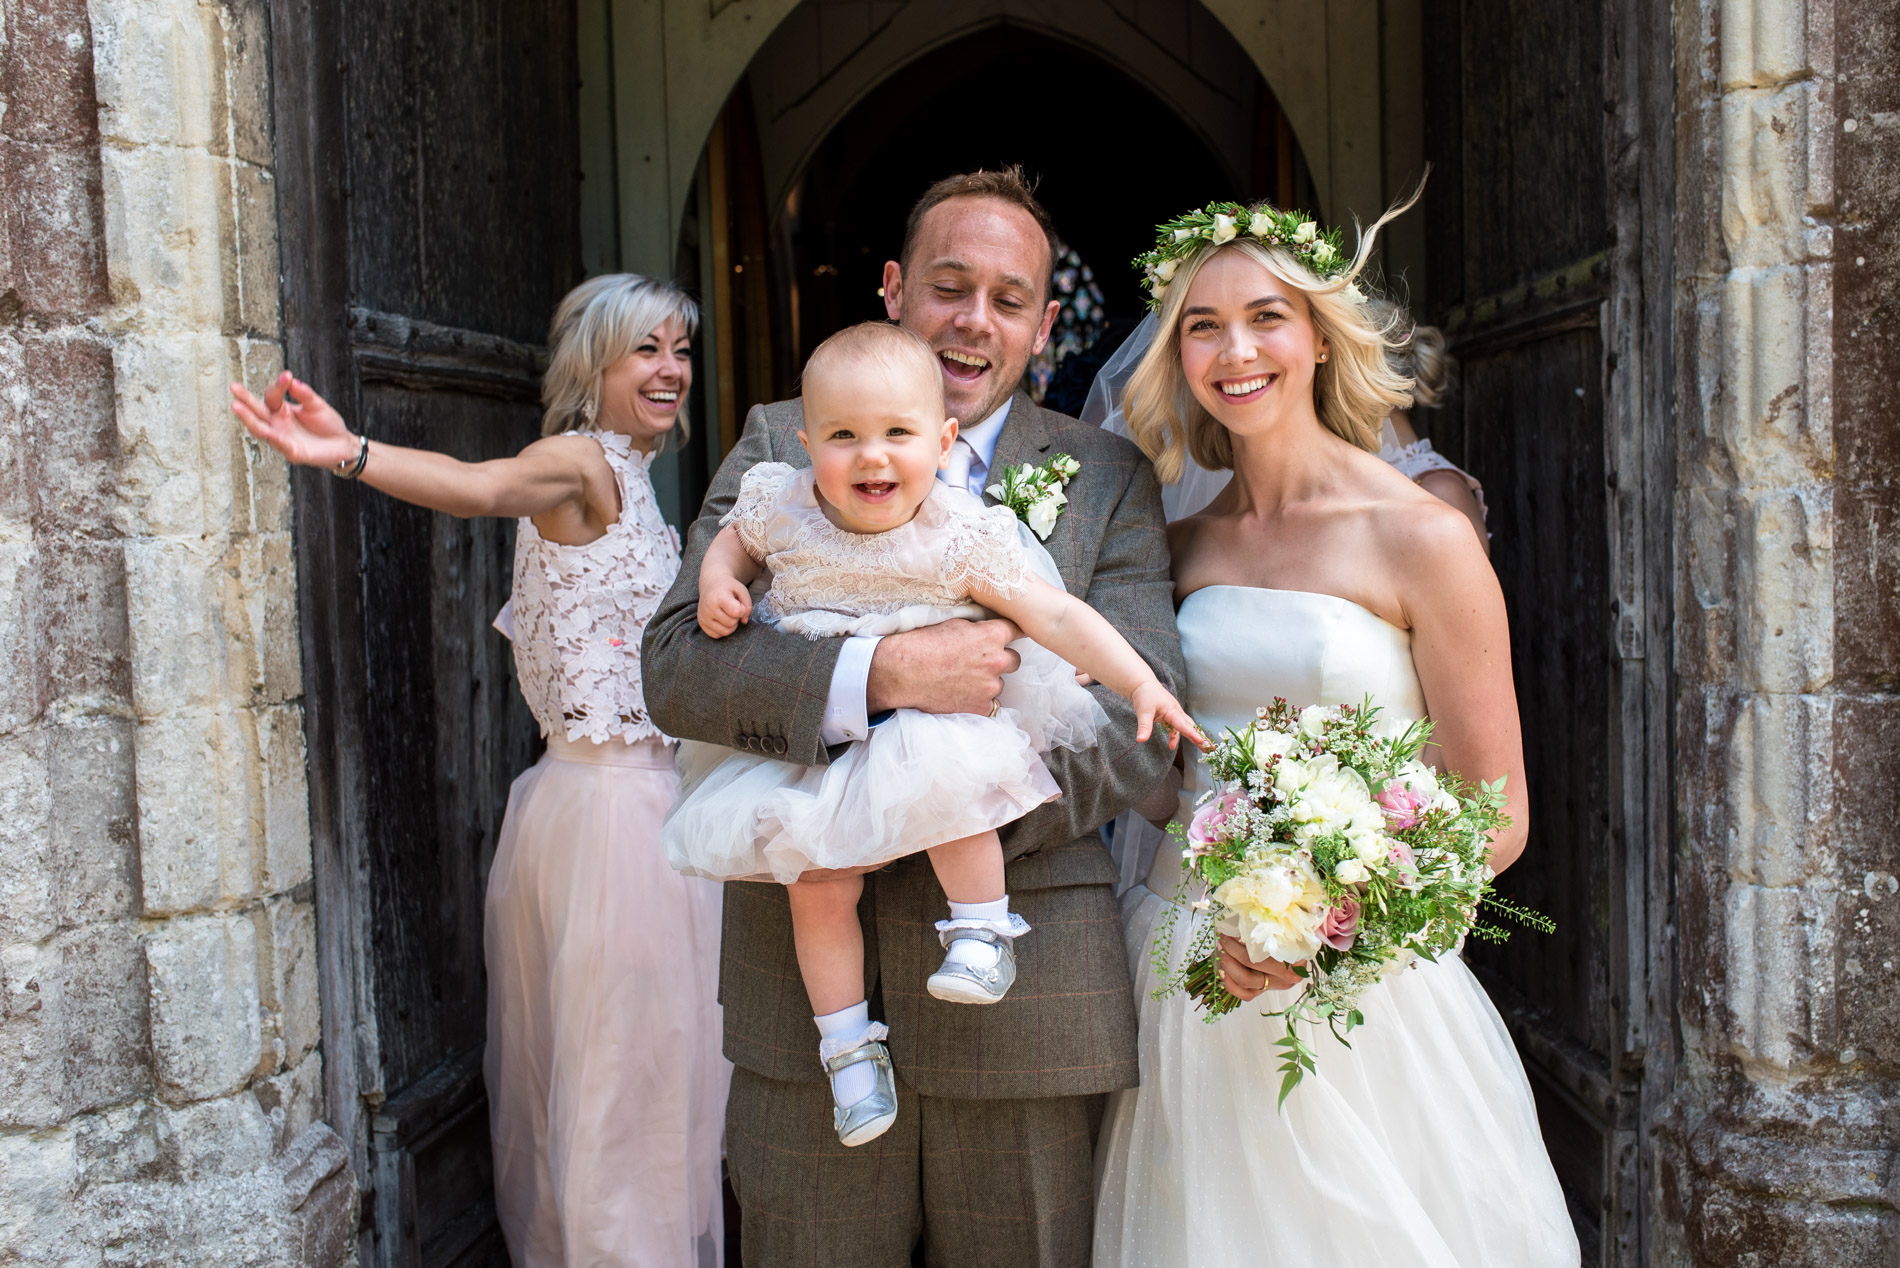 Anne and Josh exit the church after their Kent wedding in Chilham